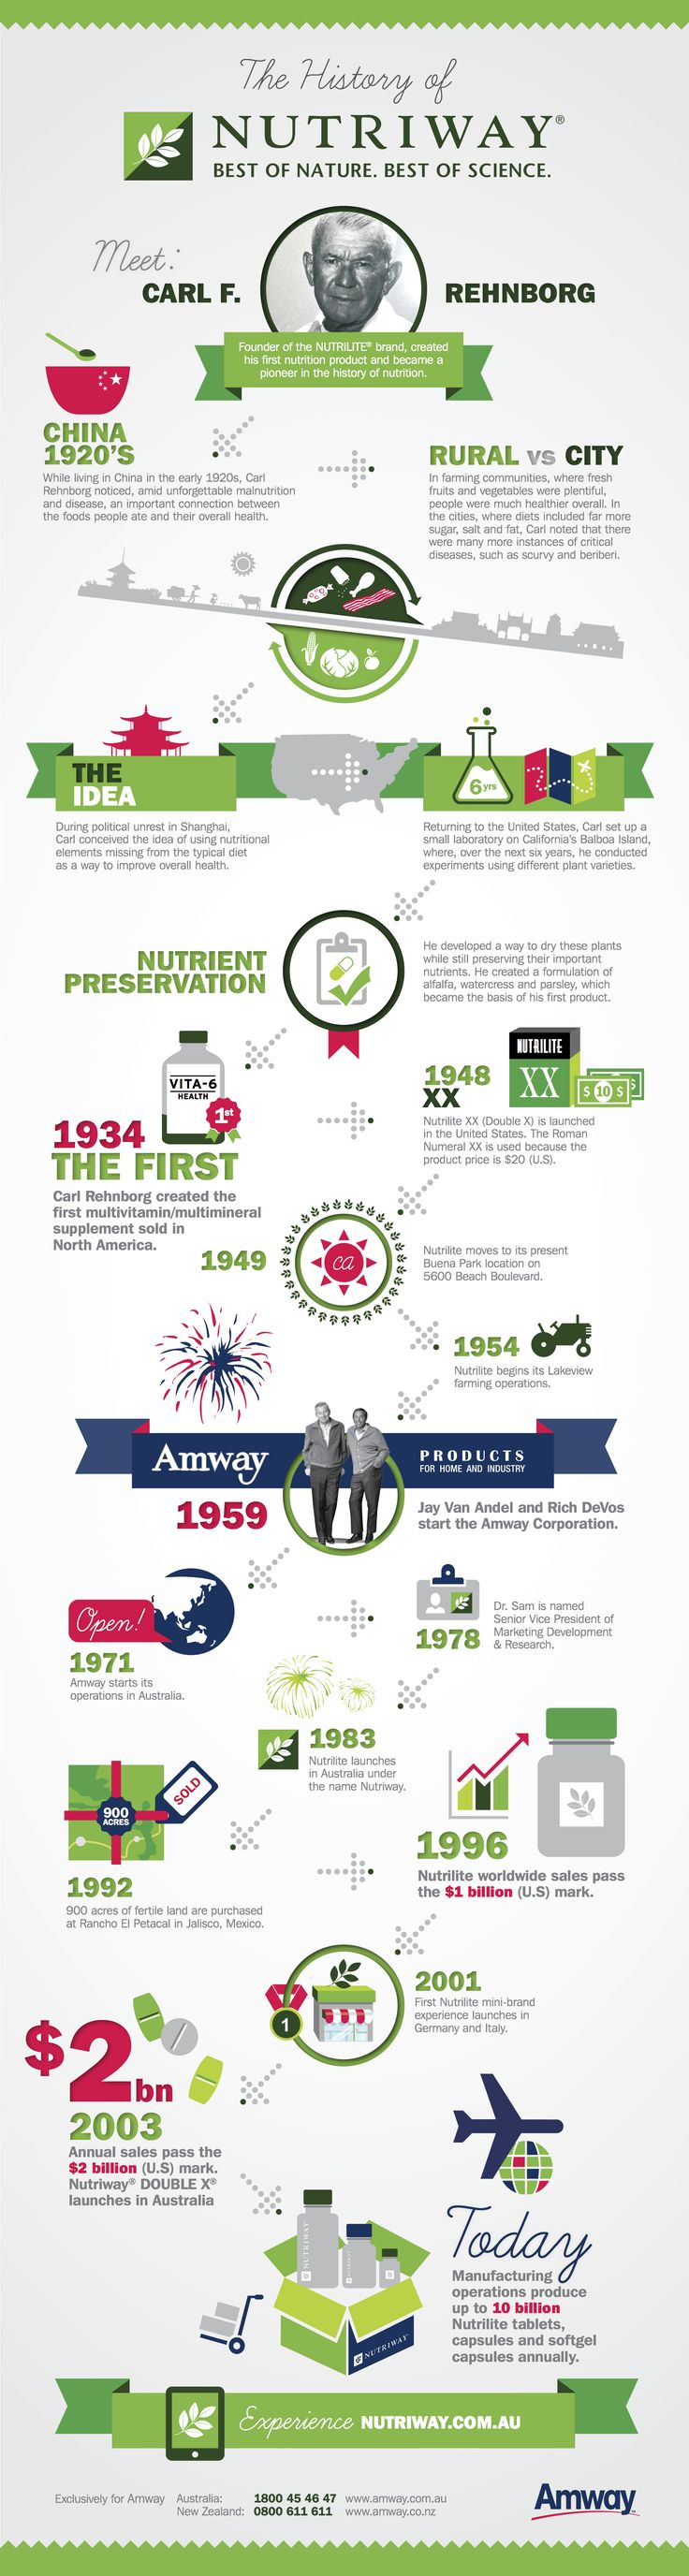 The History of NUTRIlite http://AmwayStores.com